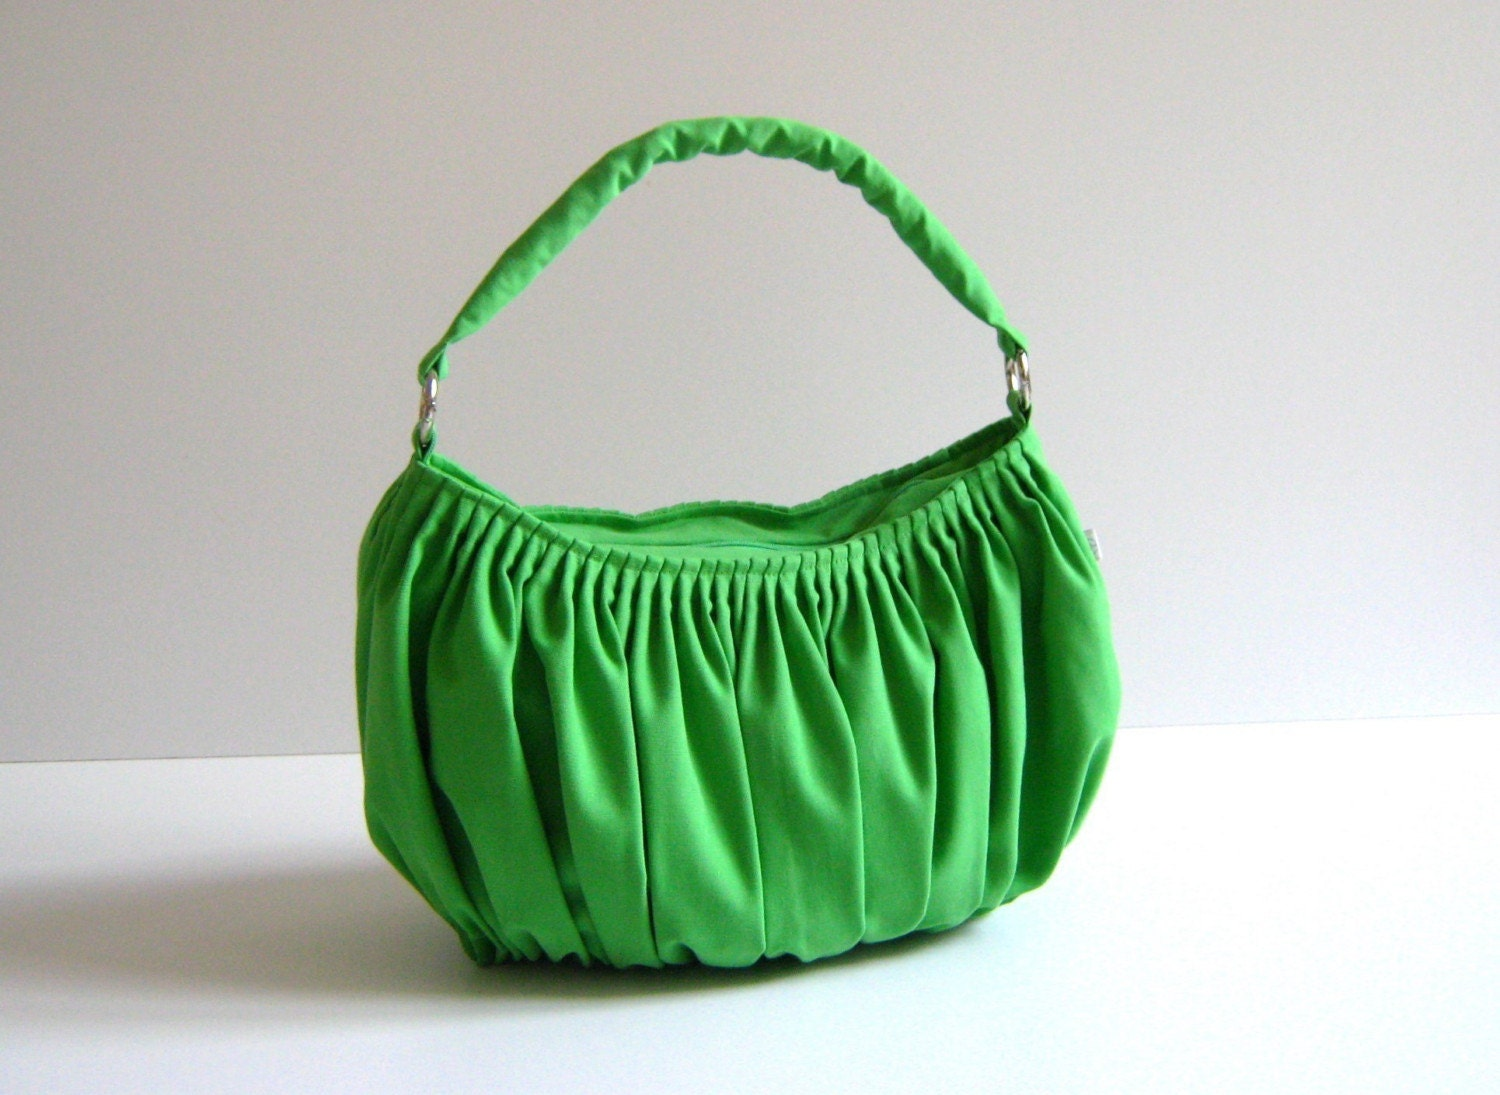 NEW Bella in Apple Green --the drapery bag, so chic, large and elegant everyday purse with zippered closure and single strap--